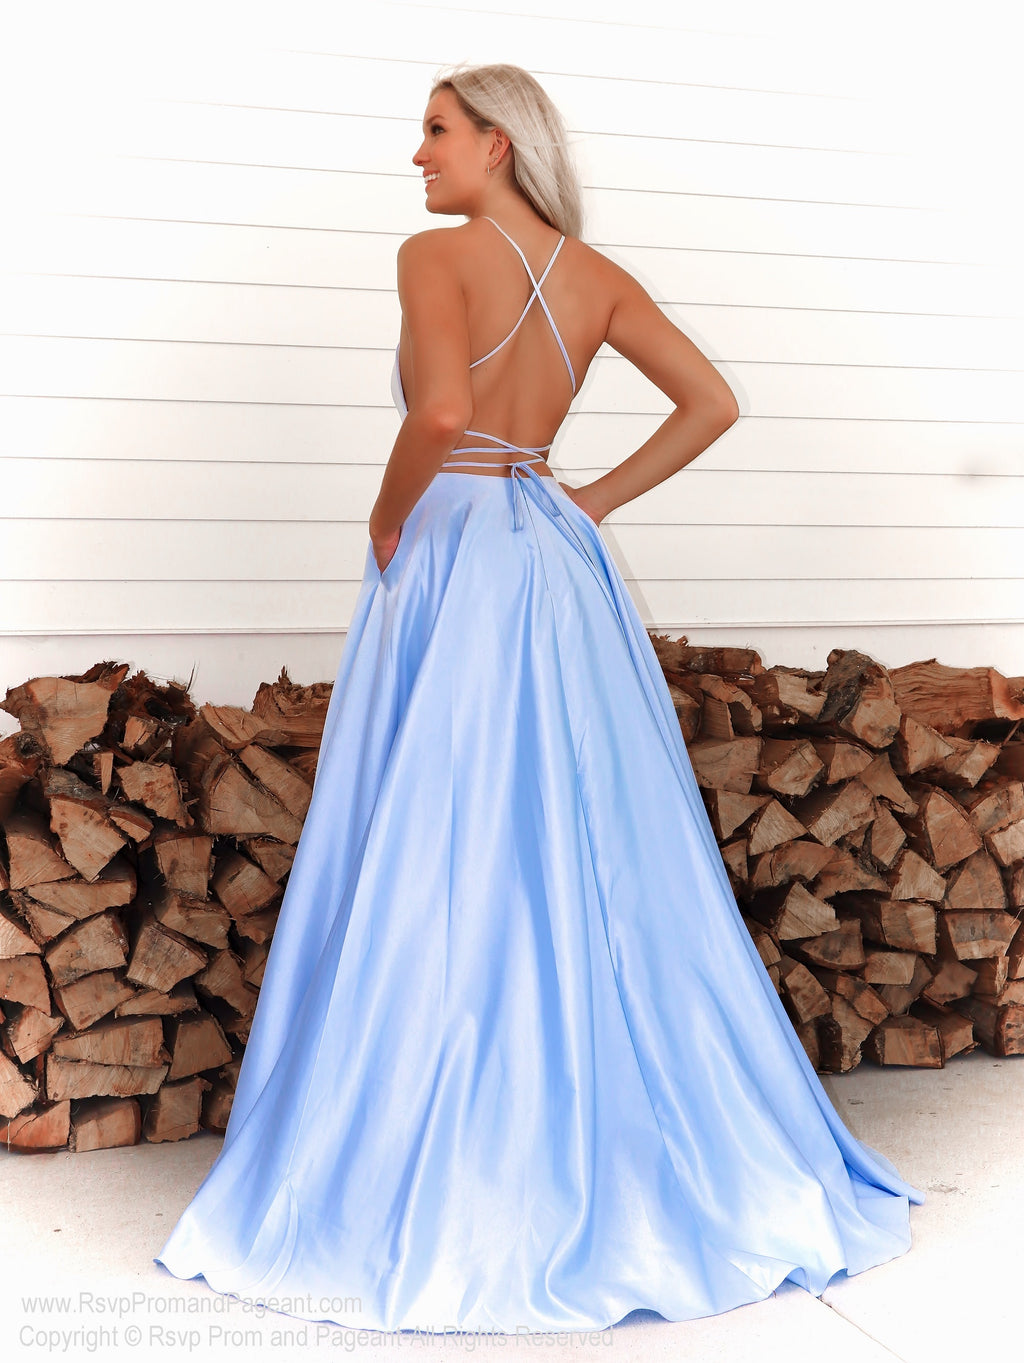 Back of Pretty model in this simple and elegant A-line dress which will definitely make heads turn as you walk  through the door! And it's at Rsvp Prom and Pageant, your source for the HOTTEST Prom and Pageant Dresses and exclusive evening gowns and located in Atlanta, Georgia!